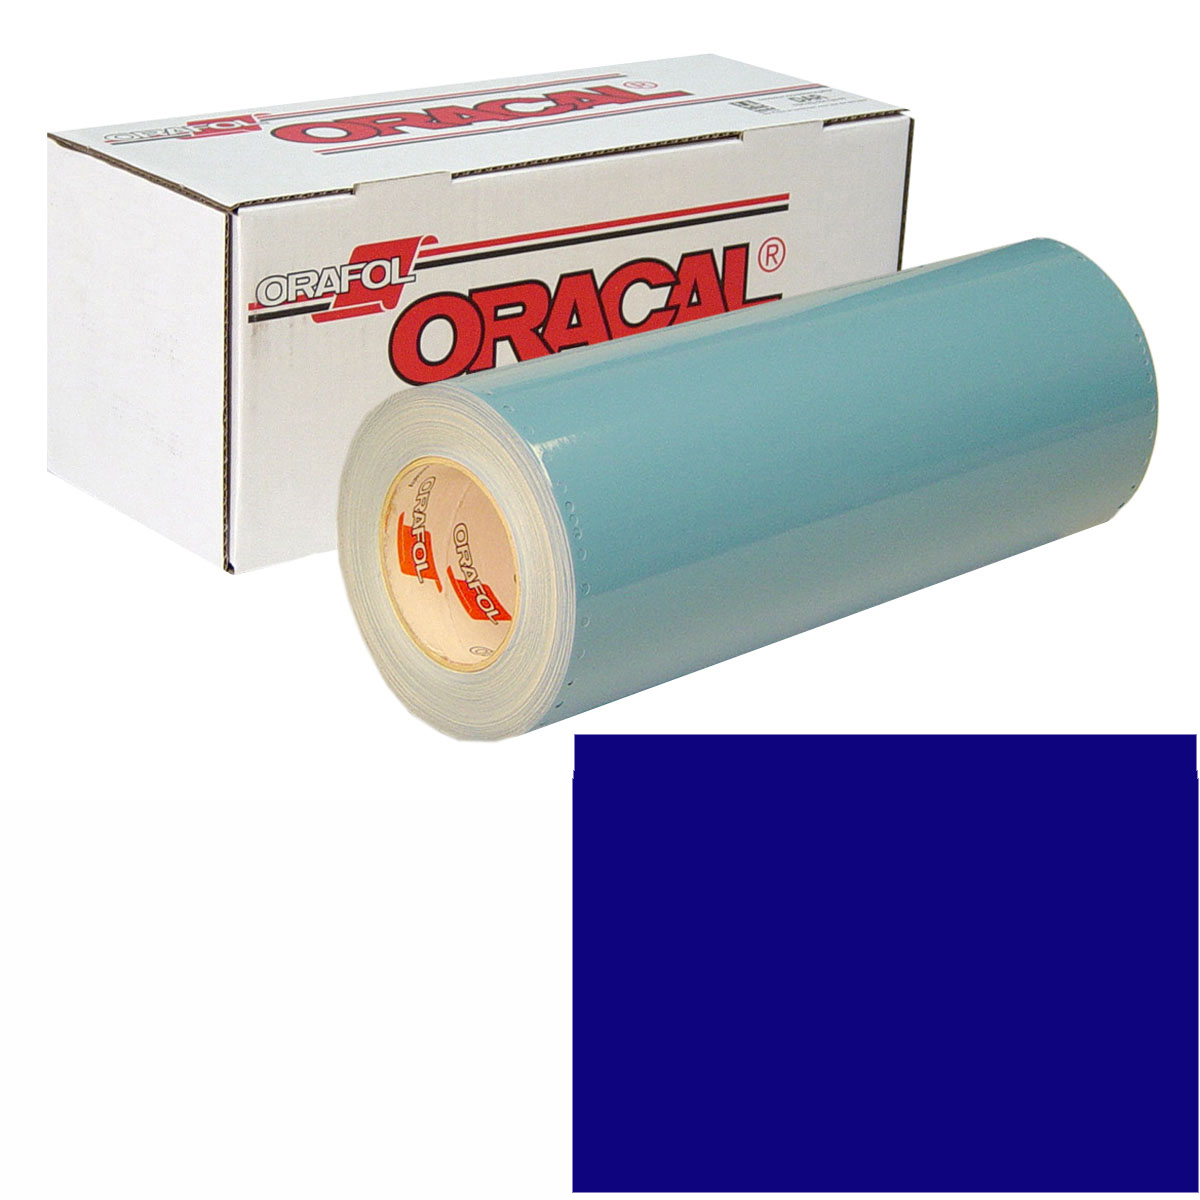 ORACAL 751 30In X 50Yd 049 King Blue